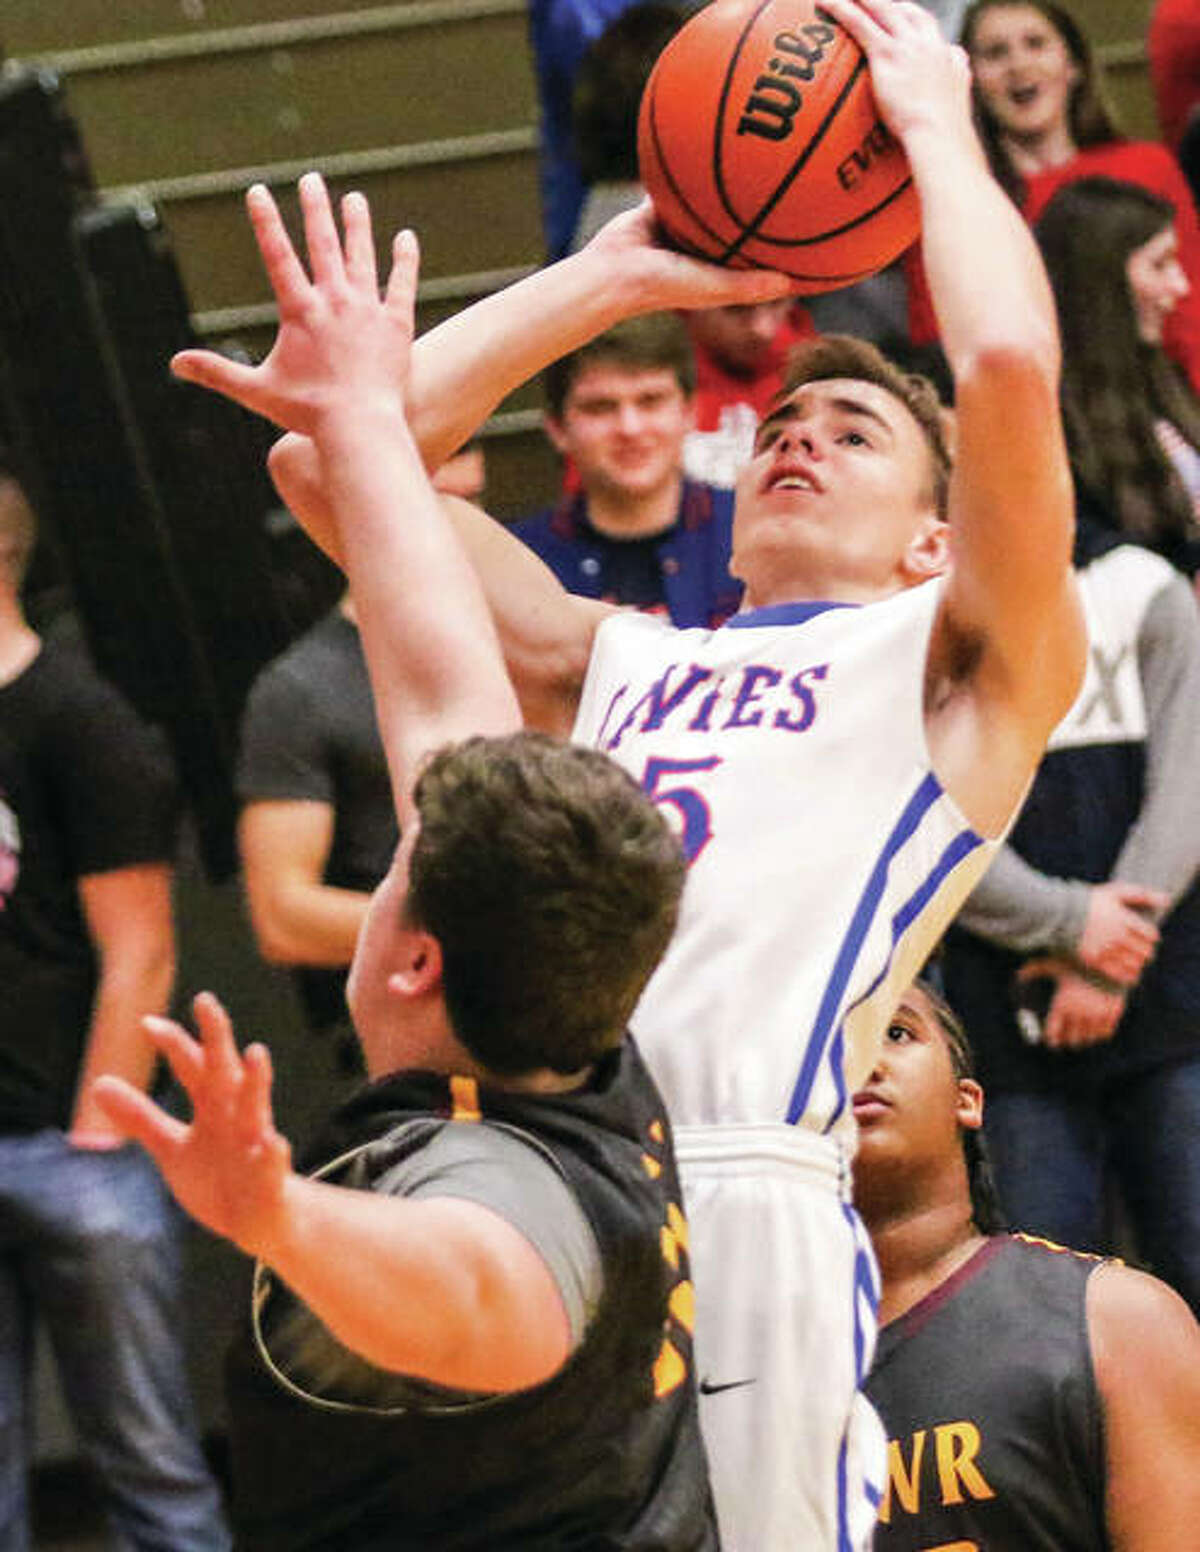 Carlinville's Aidan Naugle (middle) puts up a shot between EA-WR defenders during a nonconference game Dec. 2 in Carlinville. The Cavaliers were back at home Saturday for a SCC matchup won by the Pana Panthers.